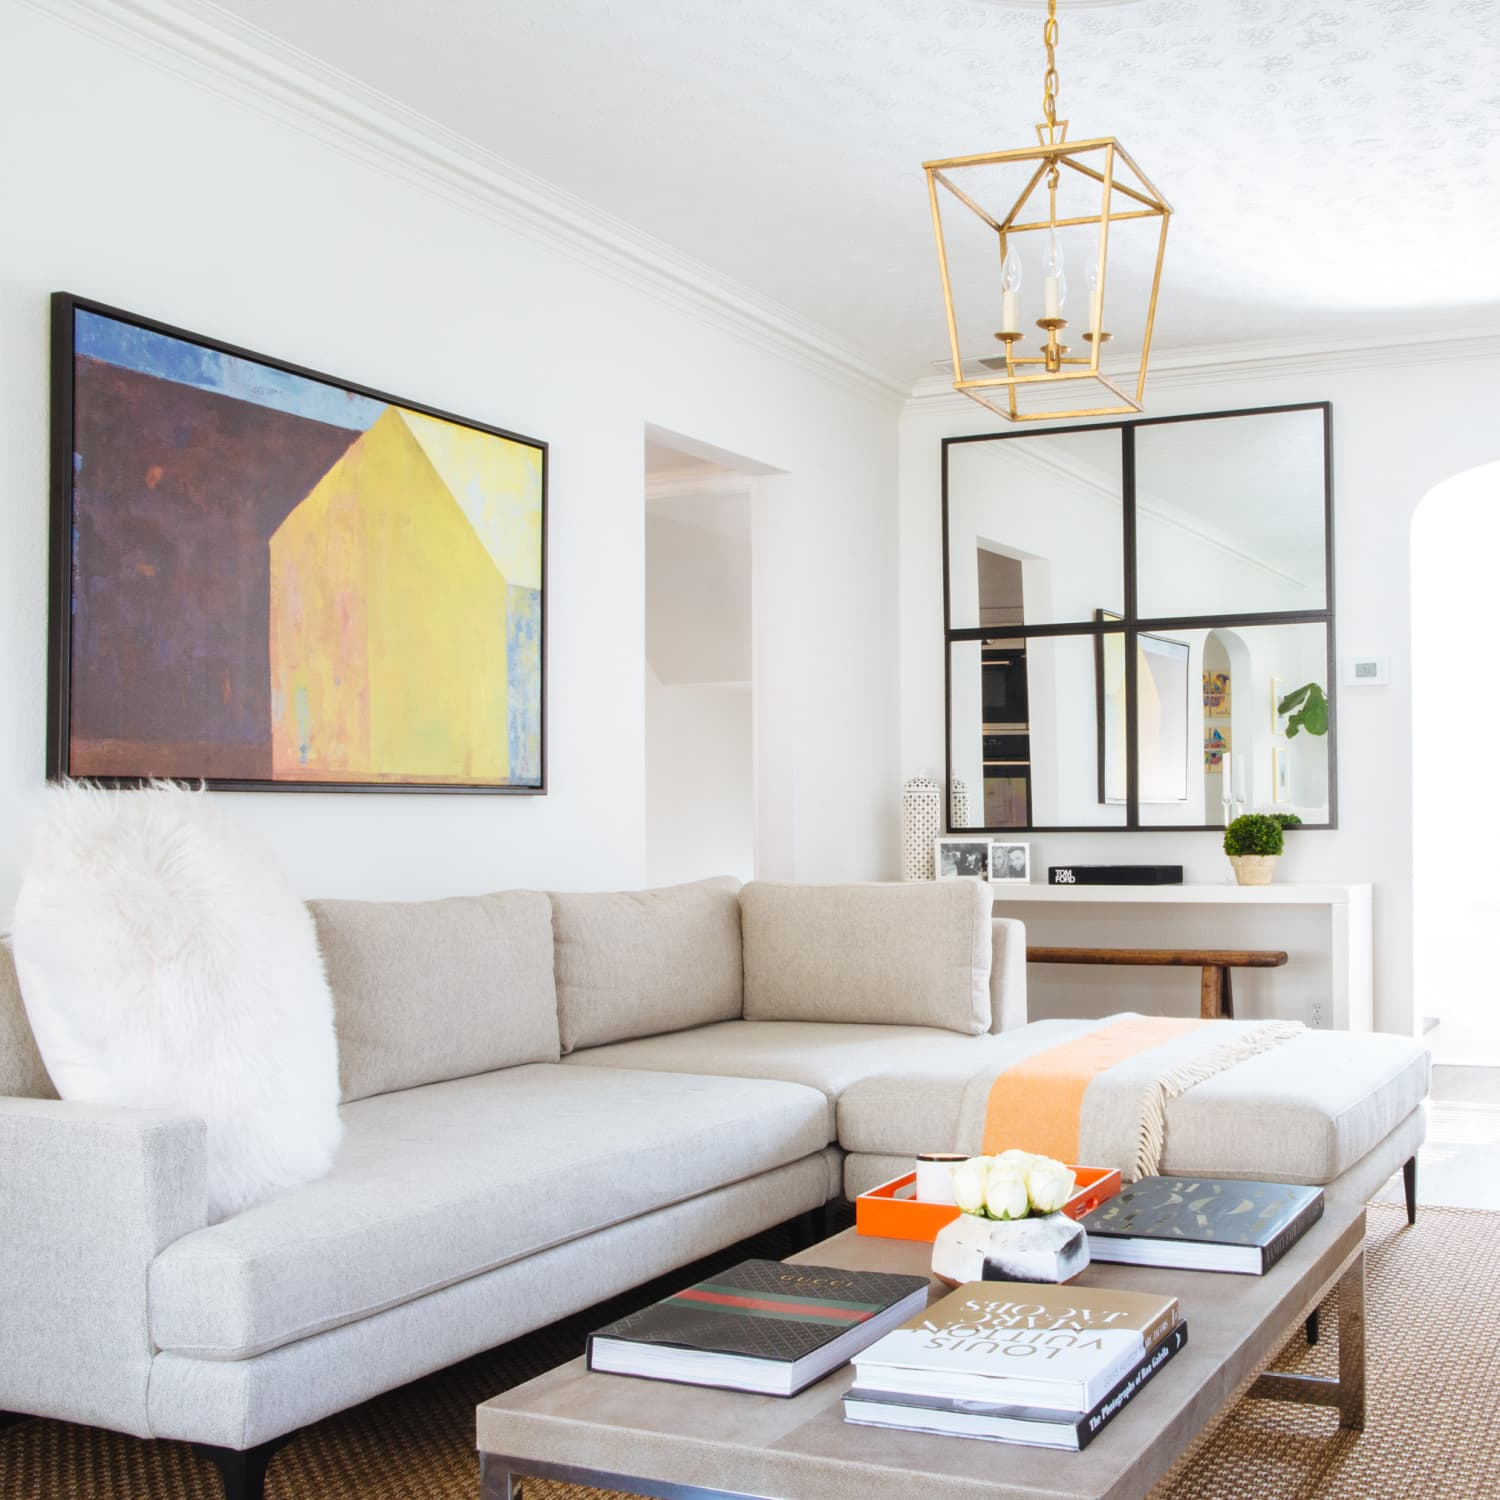 How To Get A High End Living Room Look On Budget Apartment Therapy